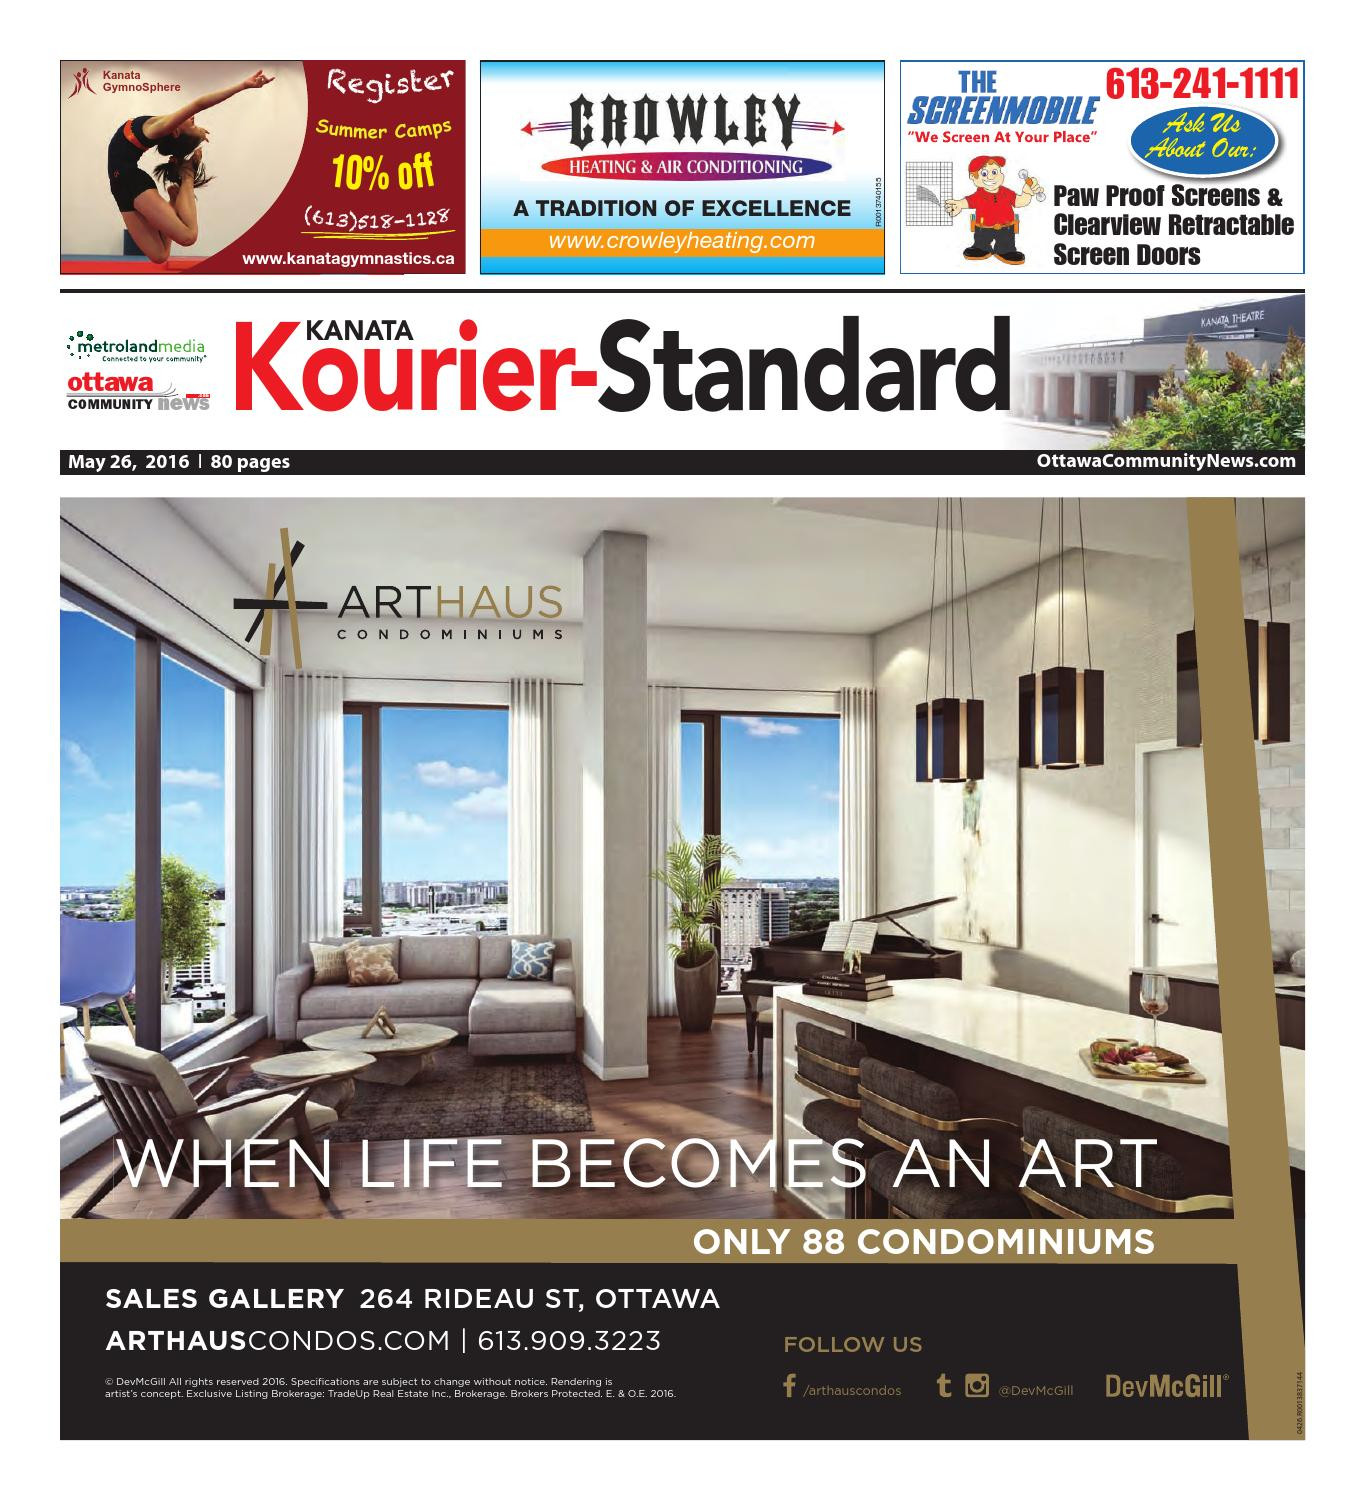 Hardwood Flooring Ingersoll Ontario Of Kanata052616 by Metroland East Kanata Kourier issuu Throughout Page 1